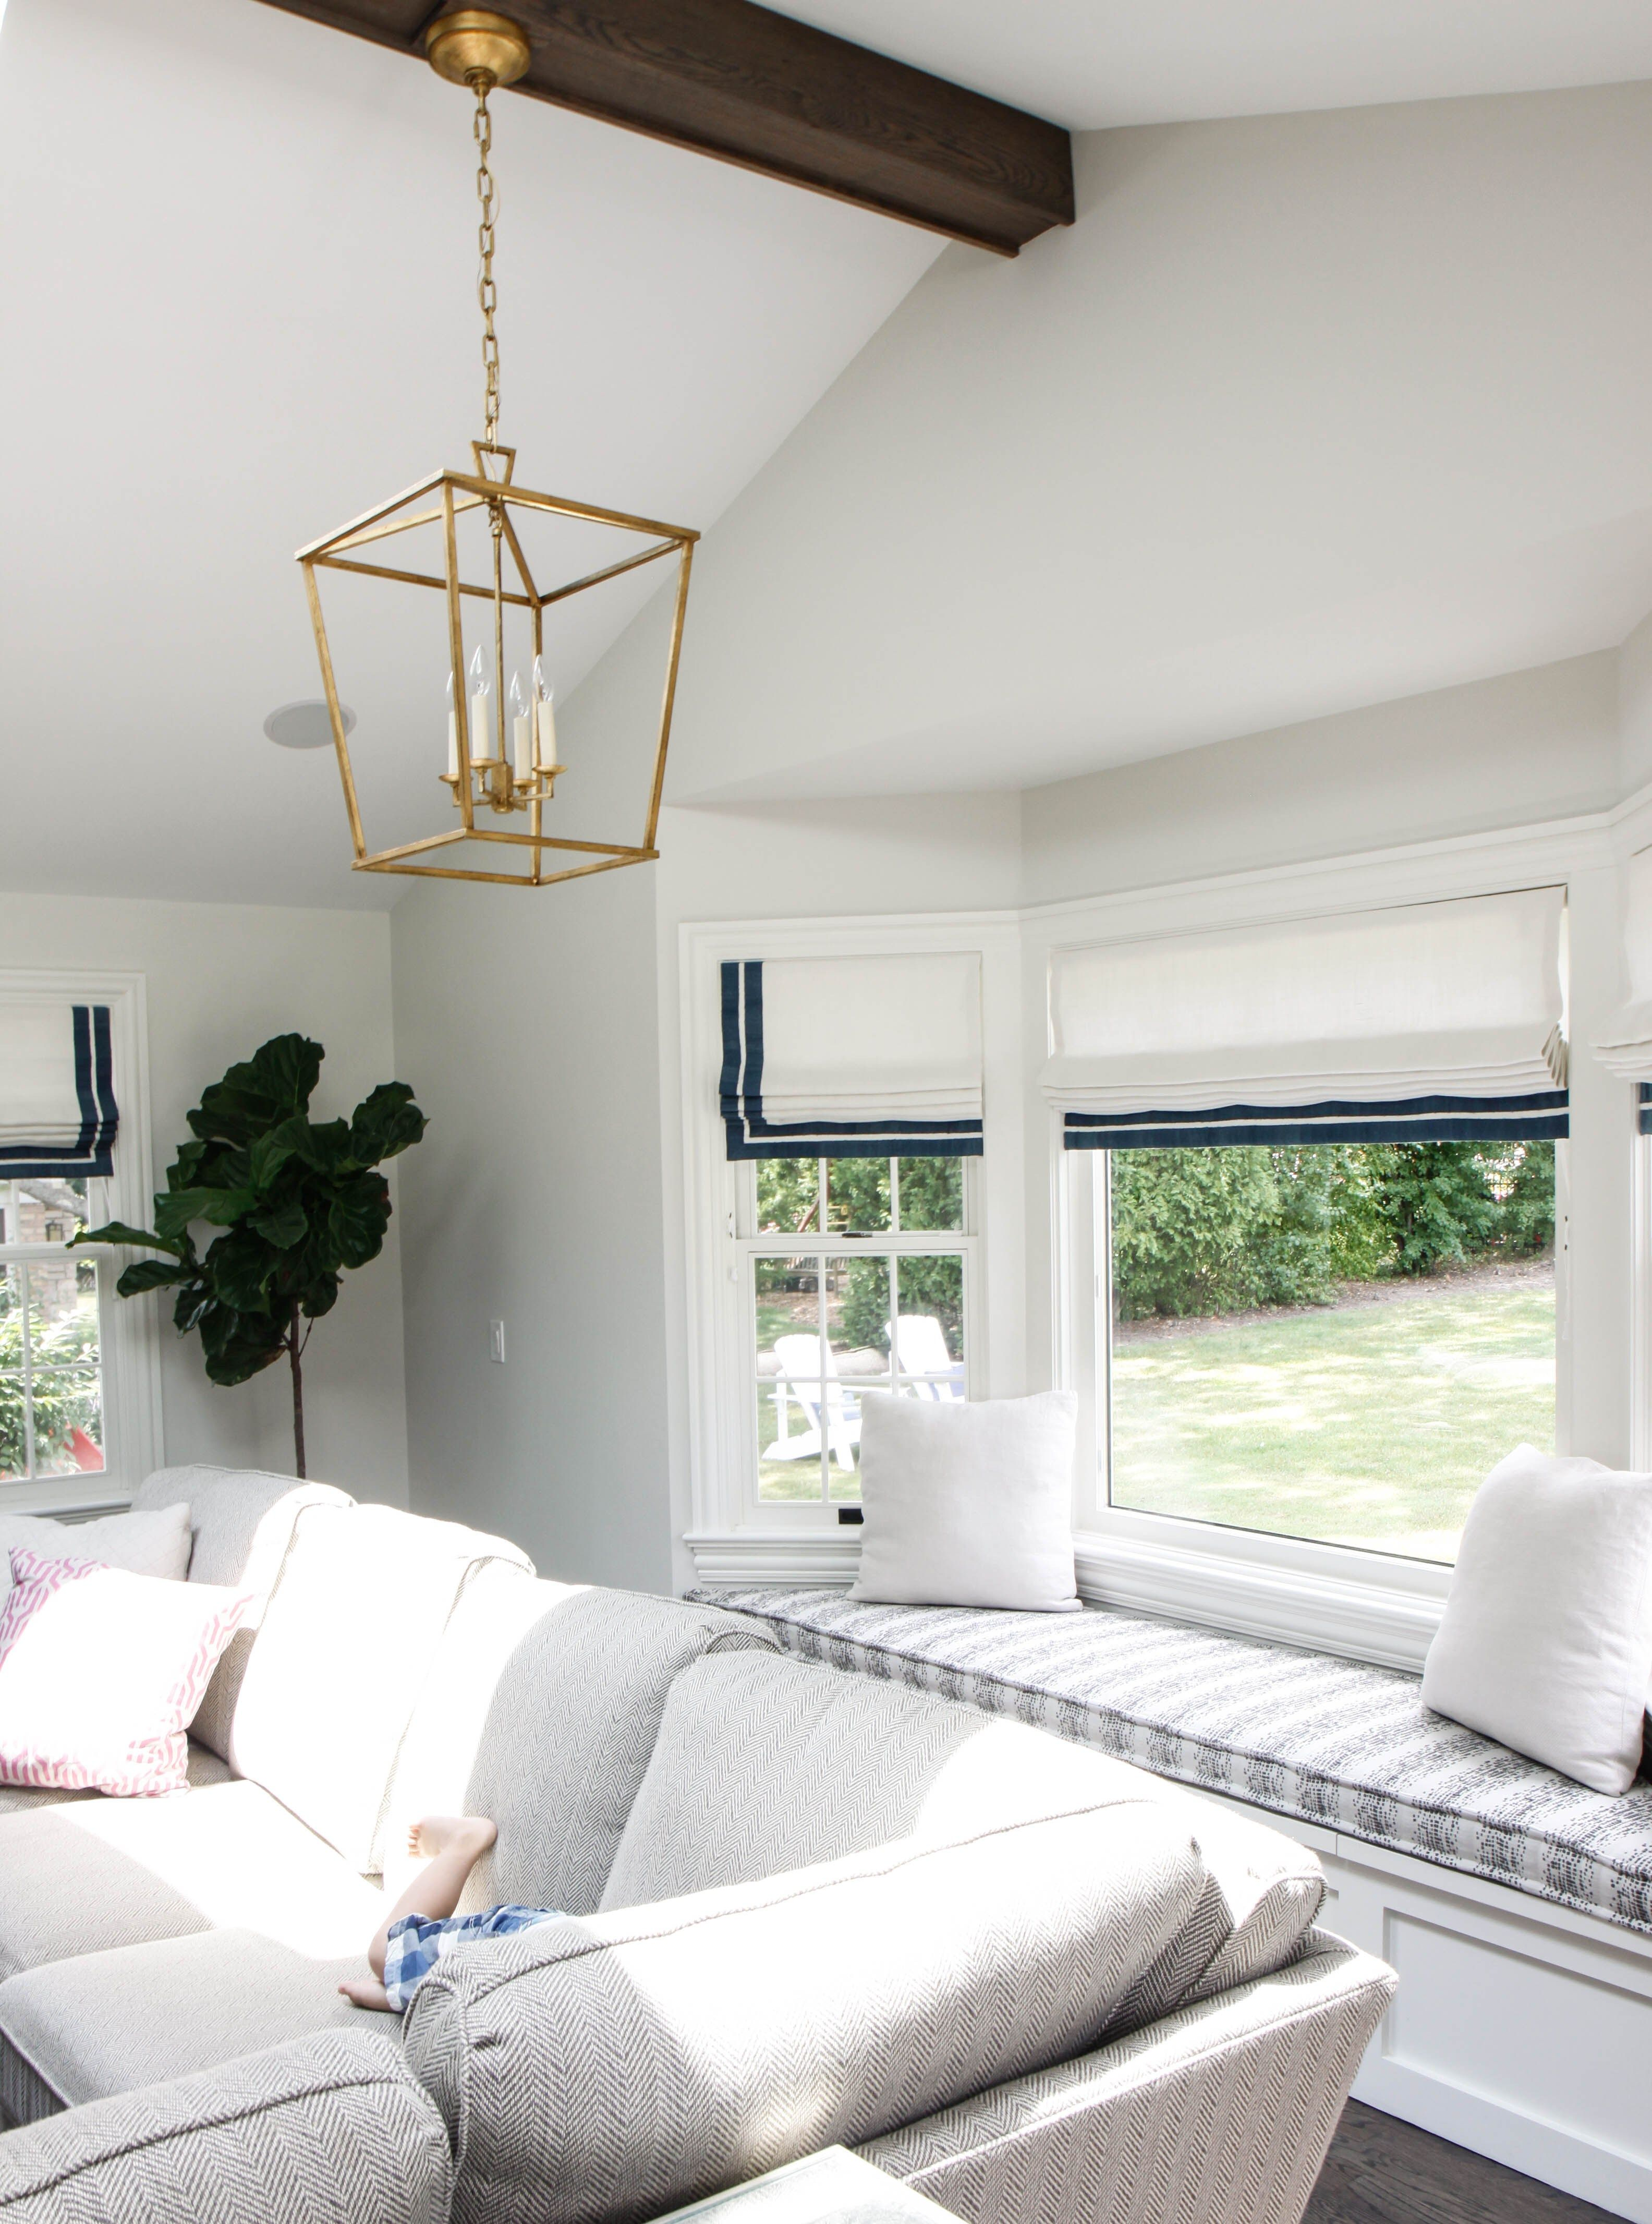 The Barrington Renovation: Before and Afters | Living rooms, Room ...